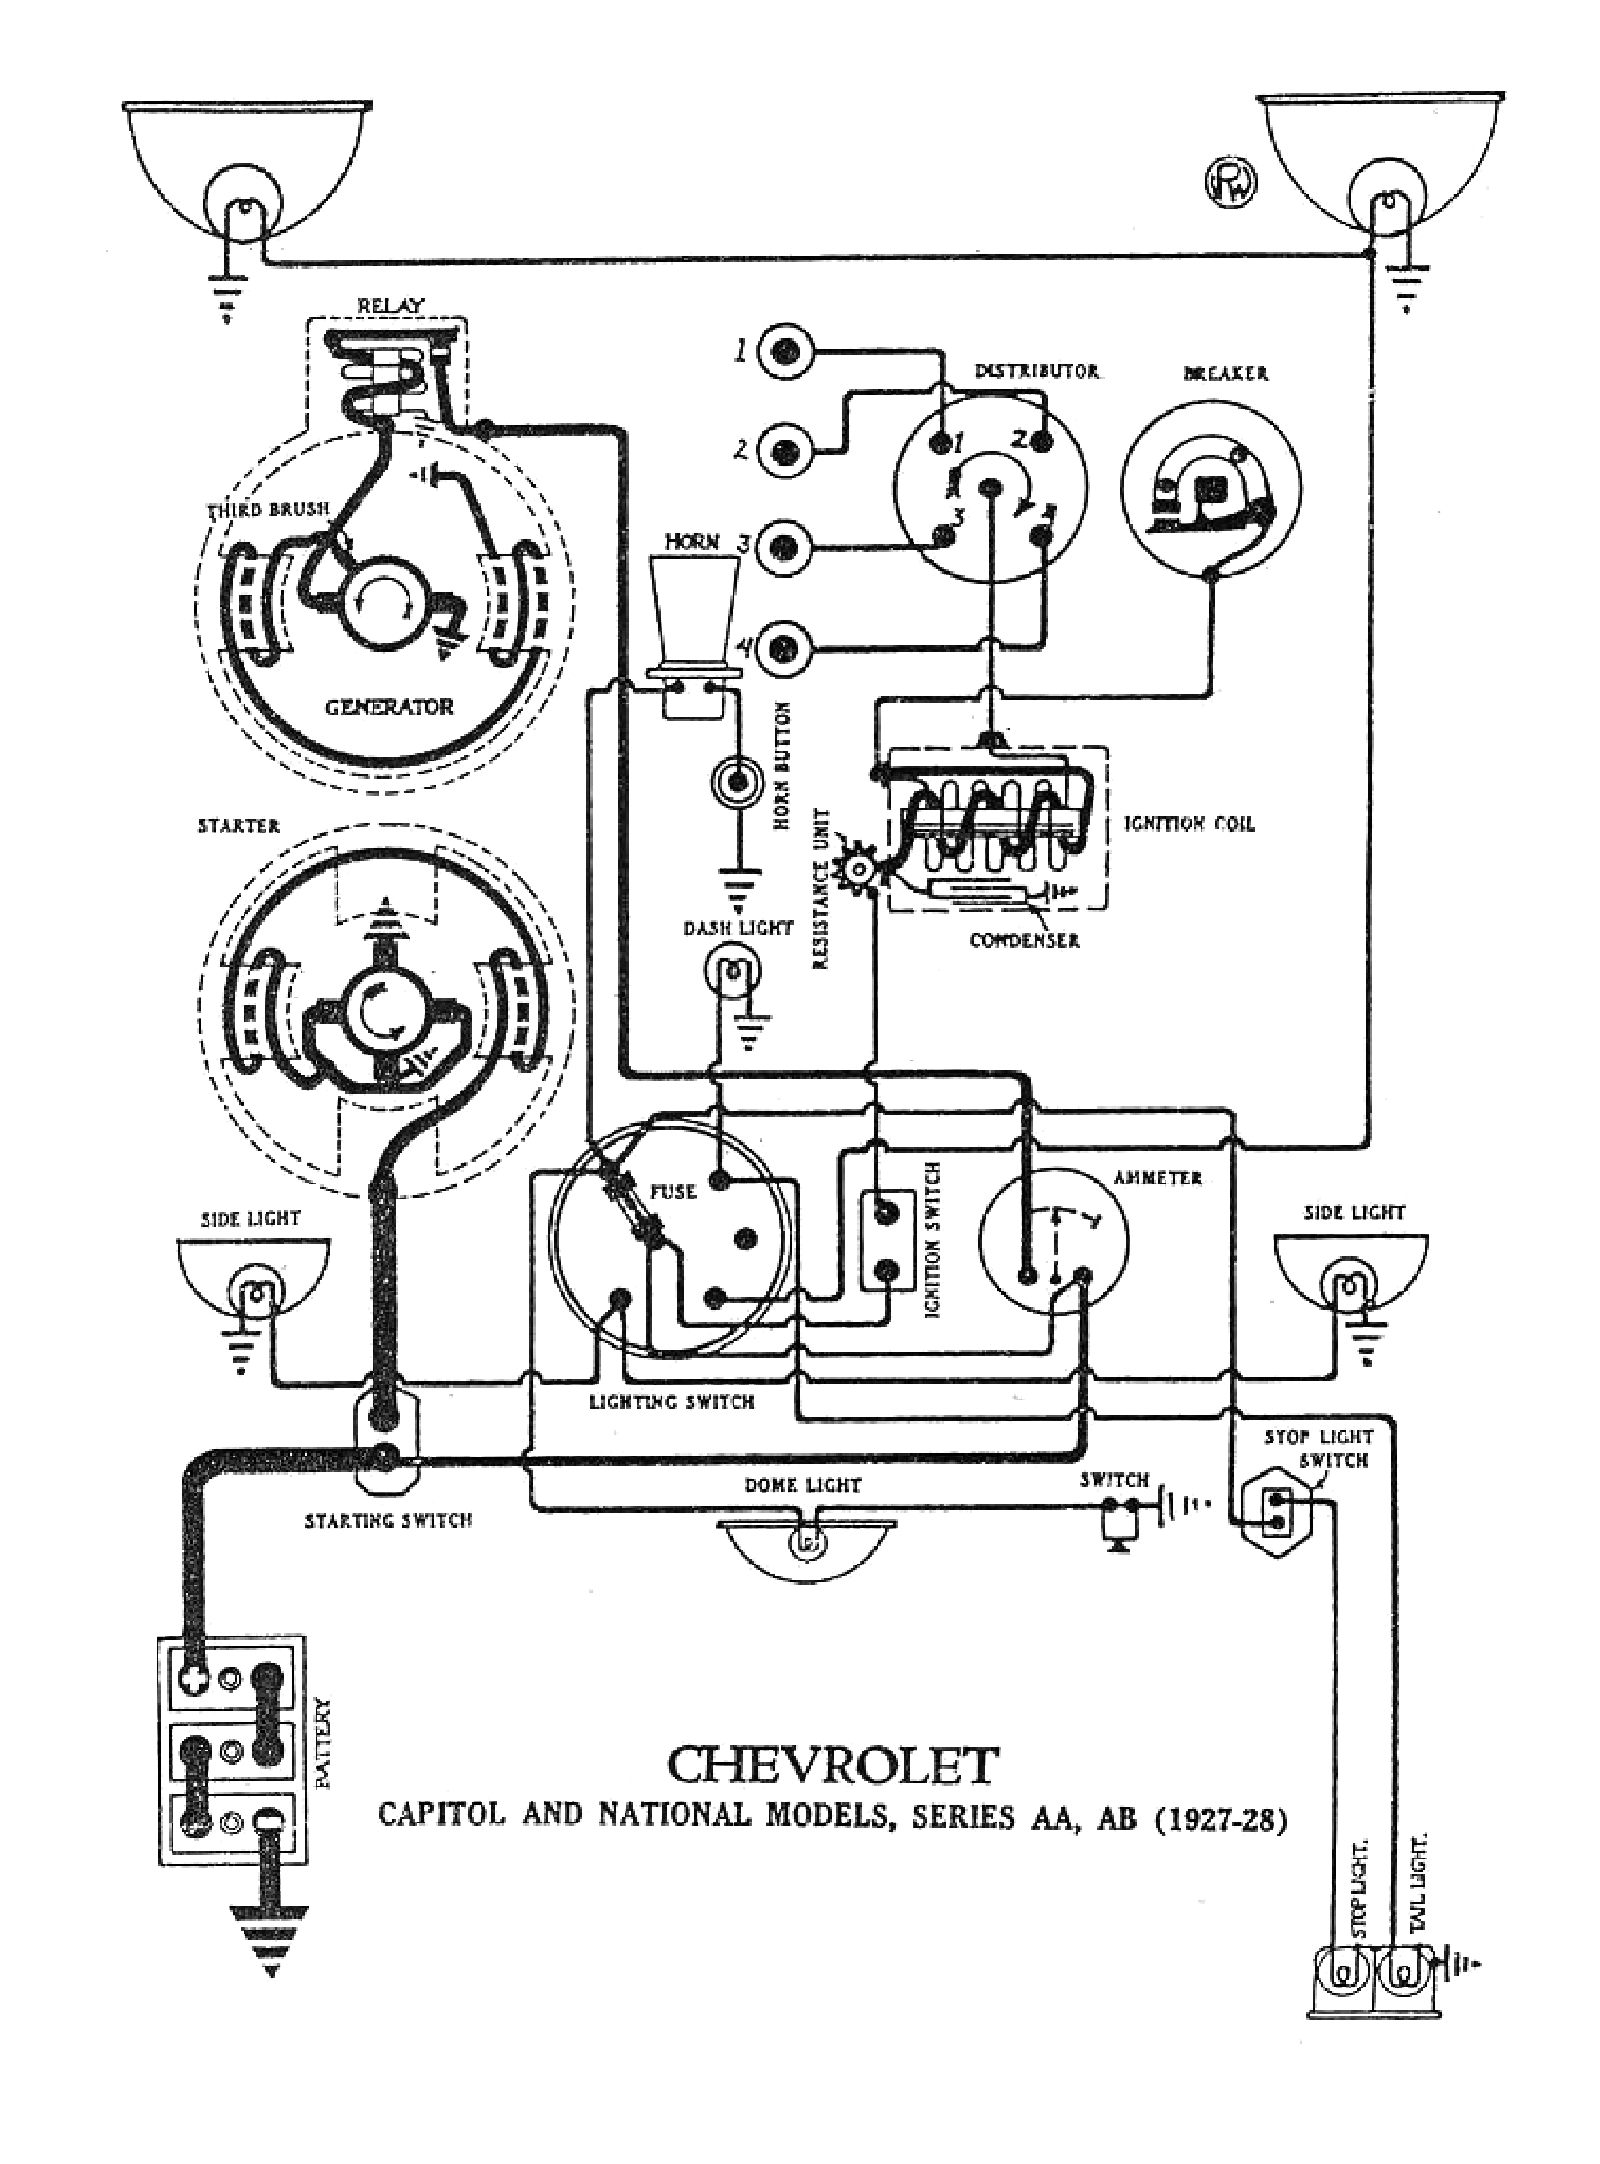 Chevy Wiring diagrams on 1940 ford wiring diagram, 1929 ford model a wiring diagram, 1951 ford pickup wiring diagram, 1939 ford pickup wiring diagram, 1946 dodge truck wiring diagram, 1949 mercury wiring diagram, 1952 ford pickup wiring diagram, 40 ford wiring diagram, 1960 cadillac wiring diagram, 1942 ford wiring diagram, 1950 ford pickup wiring diagram, 1960 ford pickup wiring diagram, 1969 ford f100 wiring diagram,